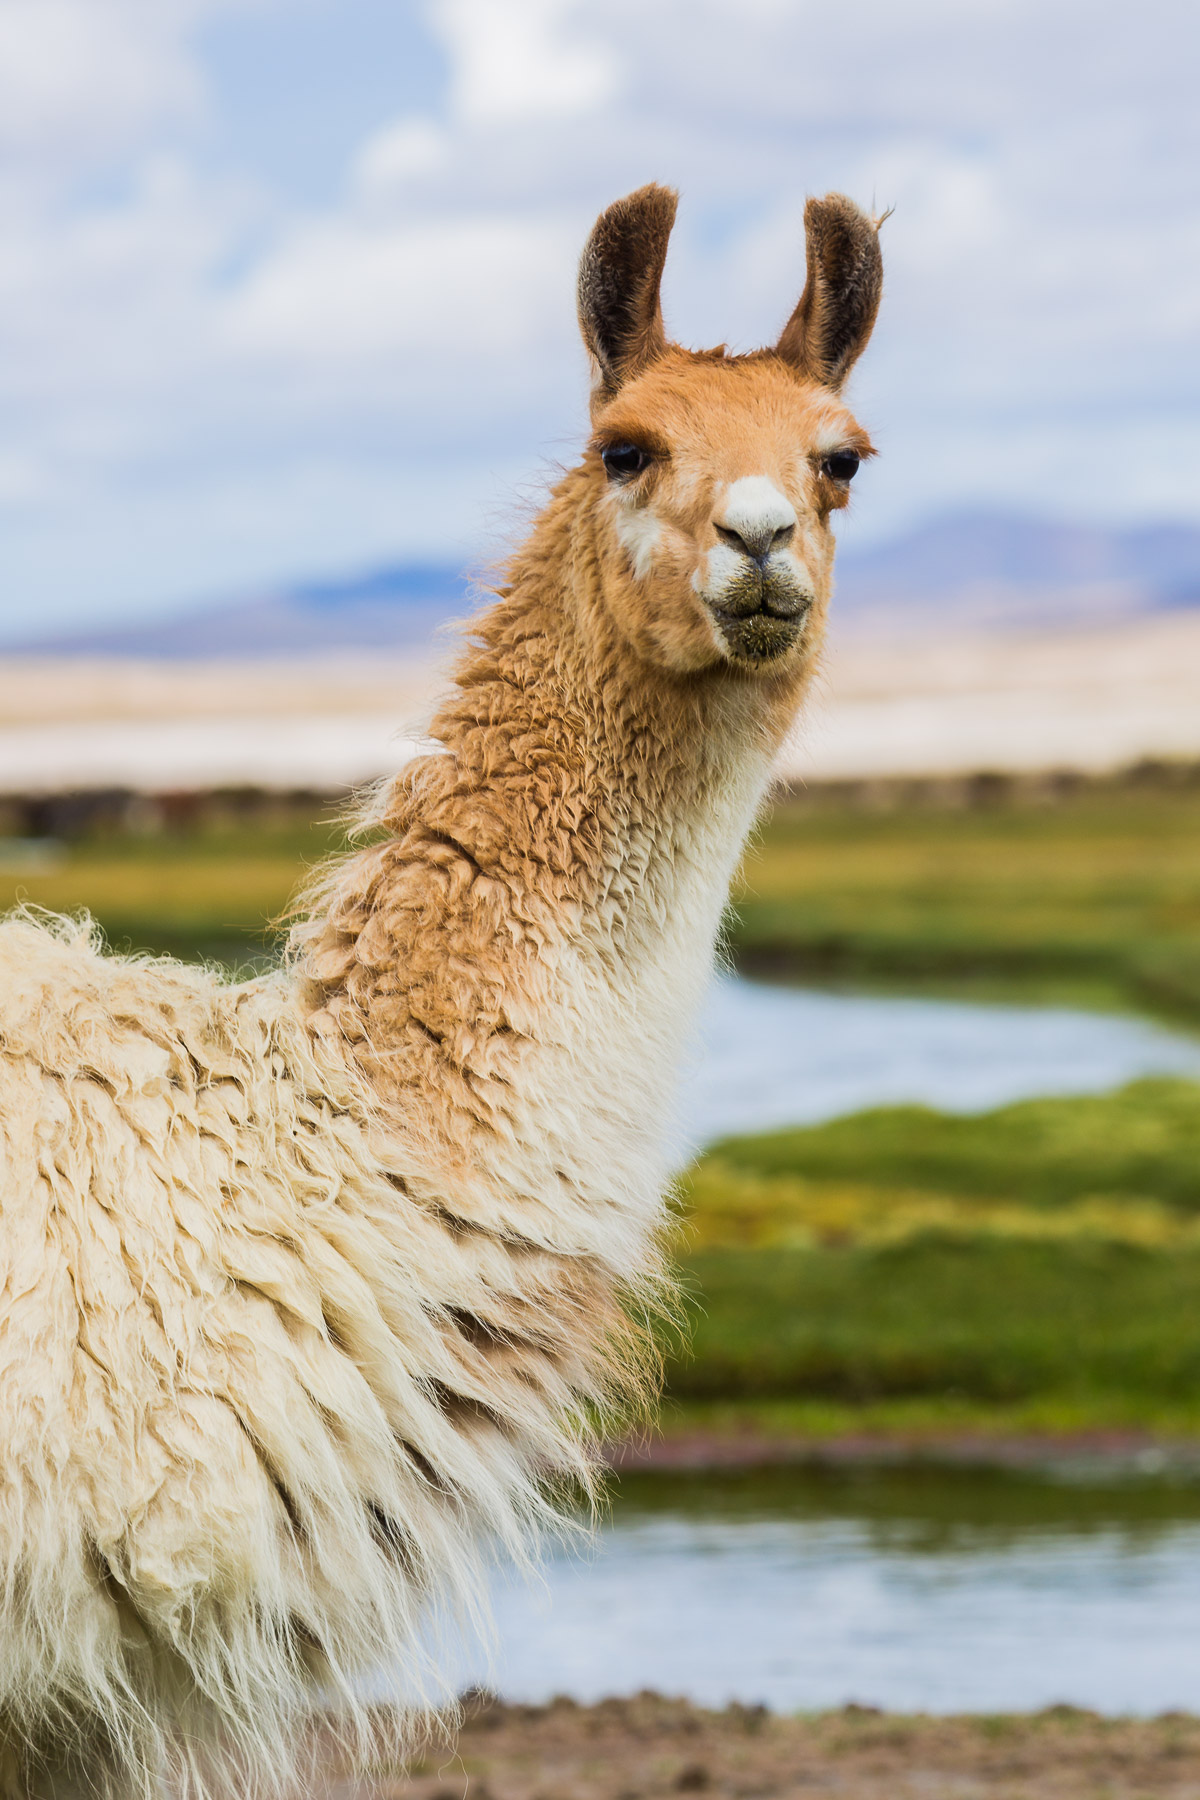 llama-bolivia-portrait-animal-photographer-photography-pet-farm-countryside-rural-south-america.jpg